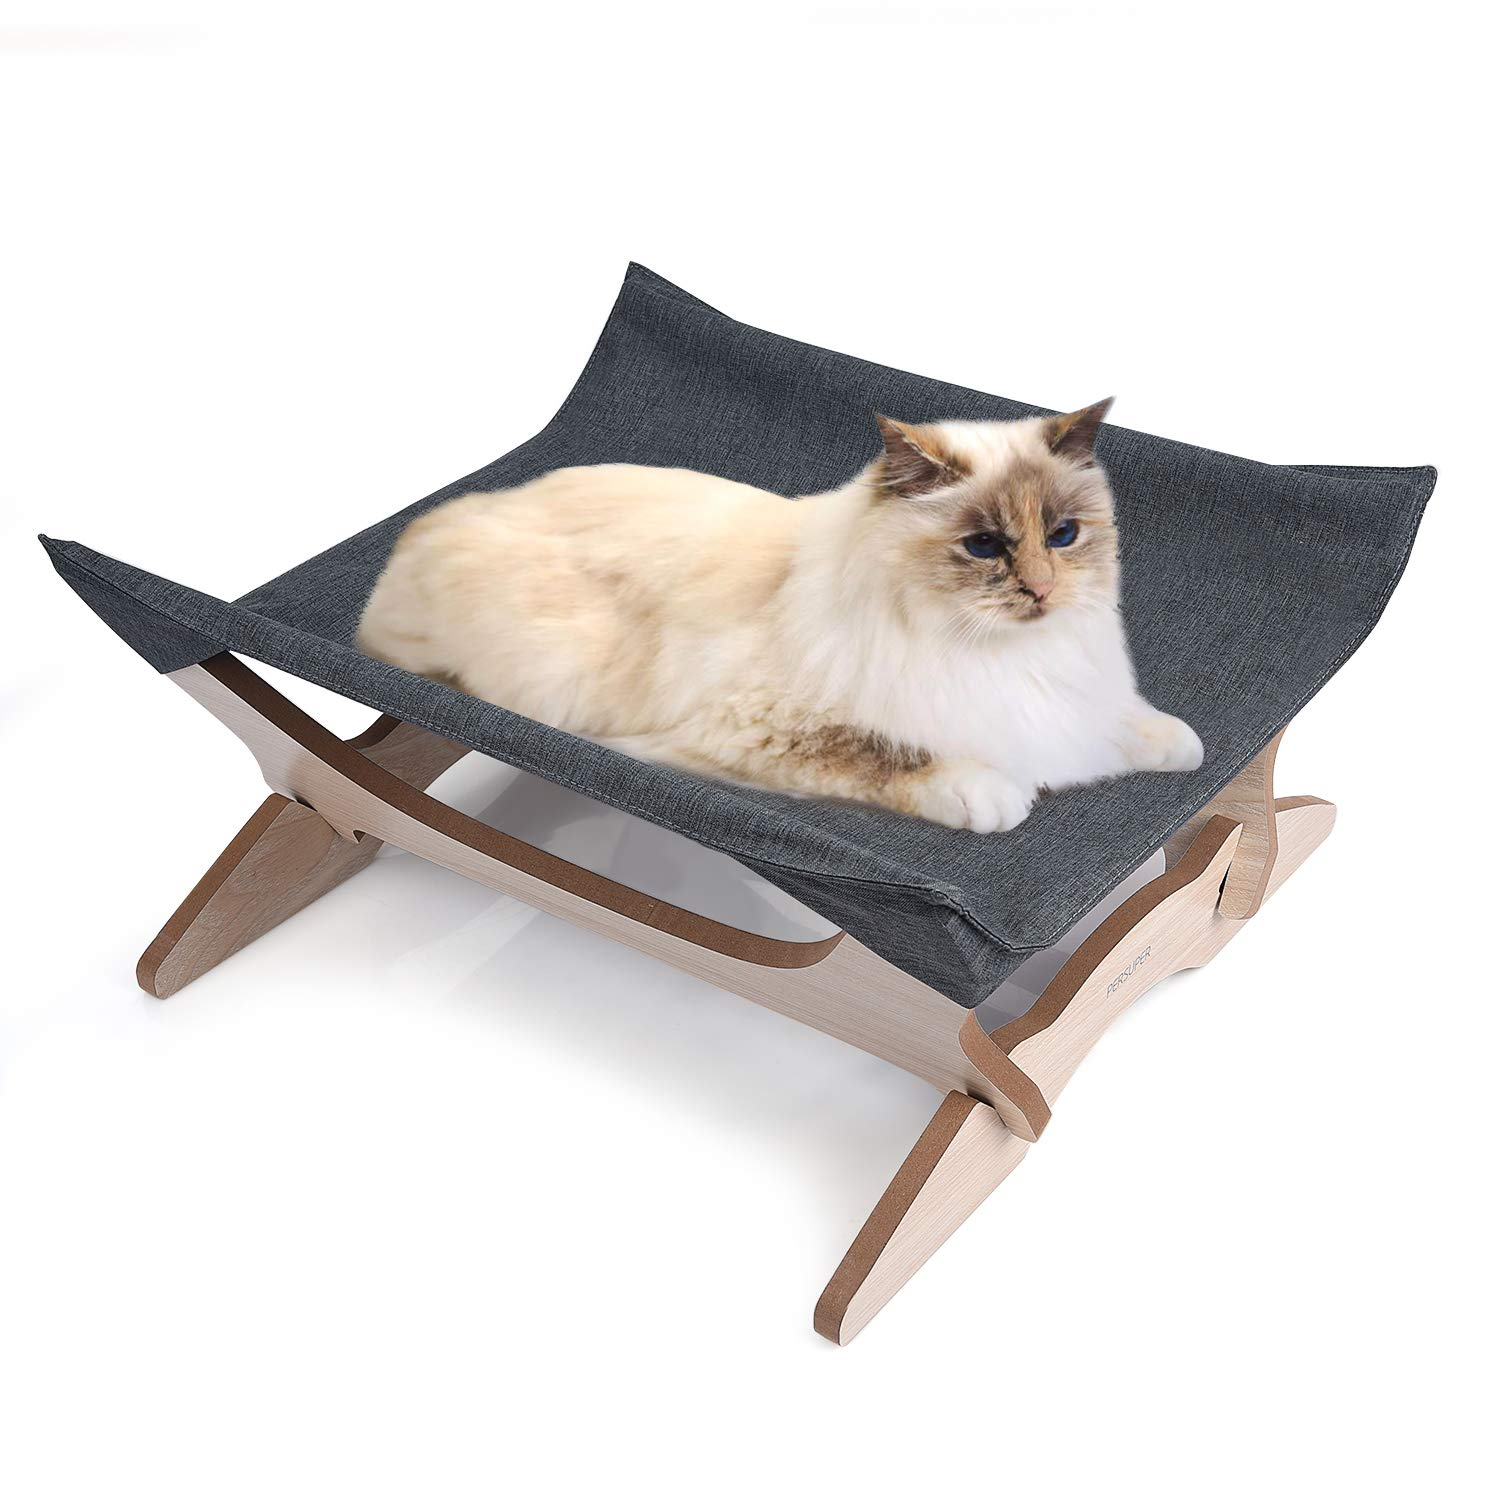 Elevated Cat Beds Cat Hammock Pet Cots Small Dog Beds Wooden Detachable Wooden Frame Square Hanging Cat Sofa Pet Furniture Sleeping Washable for Rabbit Cat Kitten Puppy Indoor/ Outdoor Sunshine grey by PERSUPER